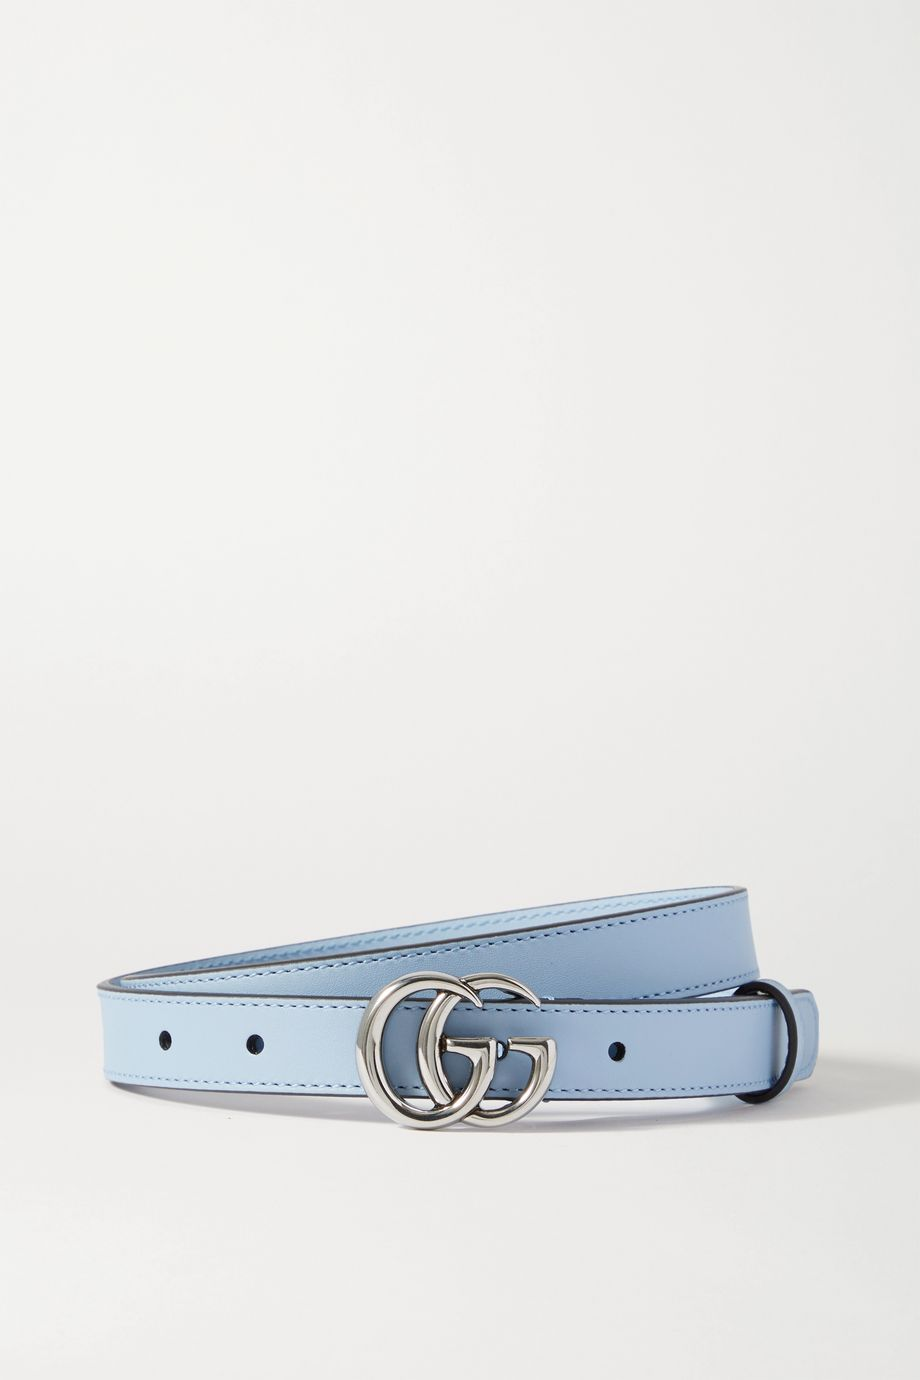 Gucci + NET SUSTAIN leather belt